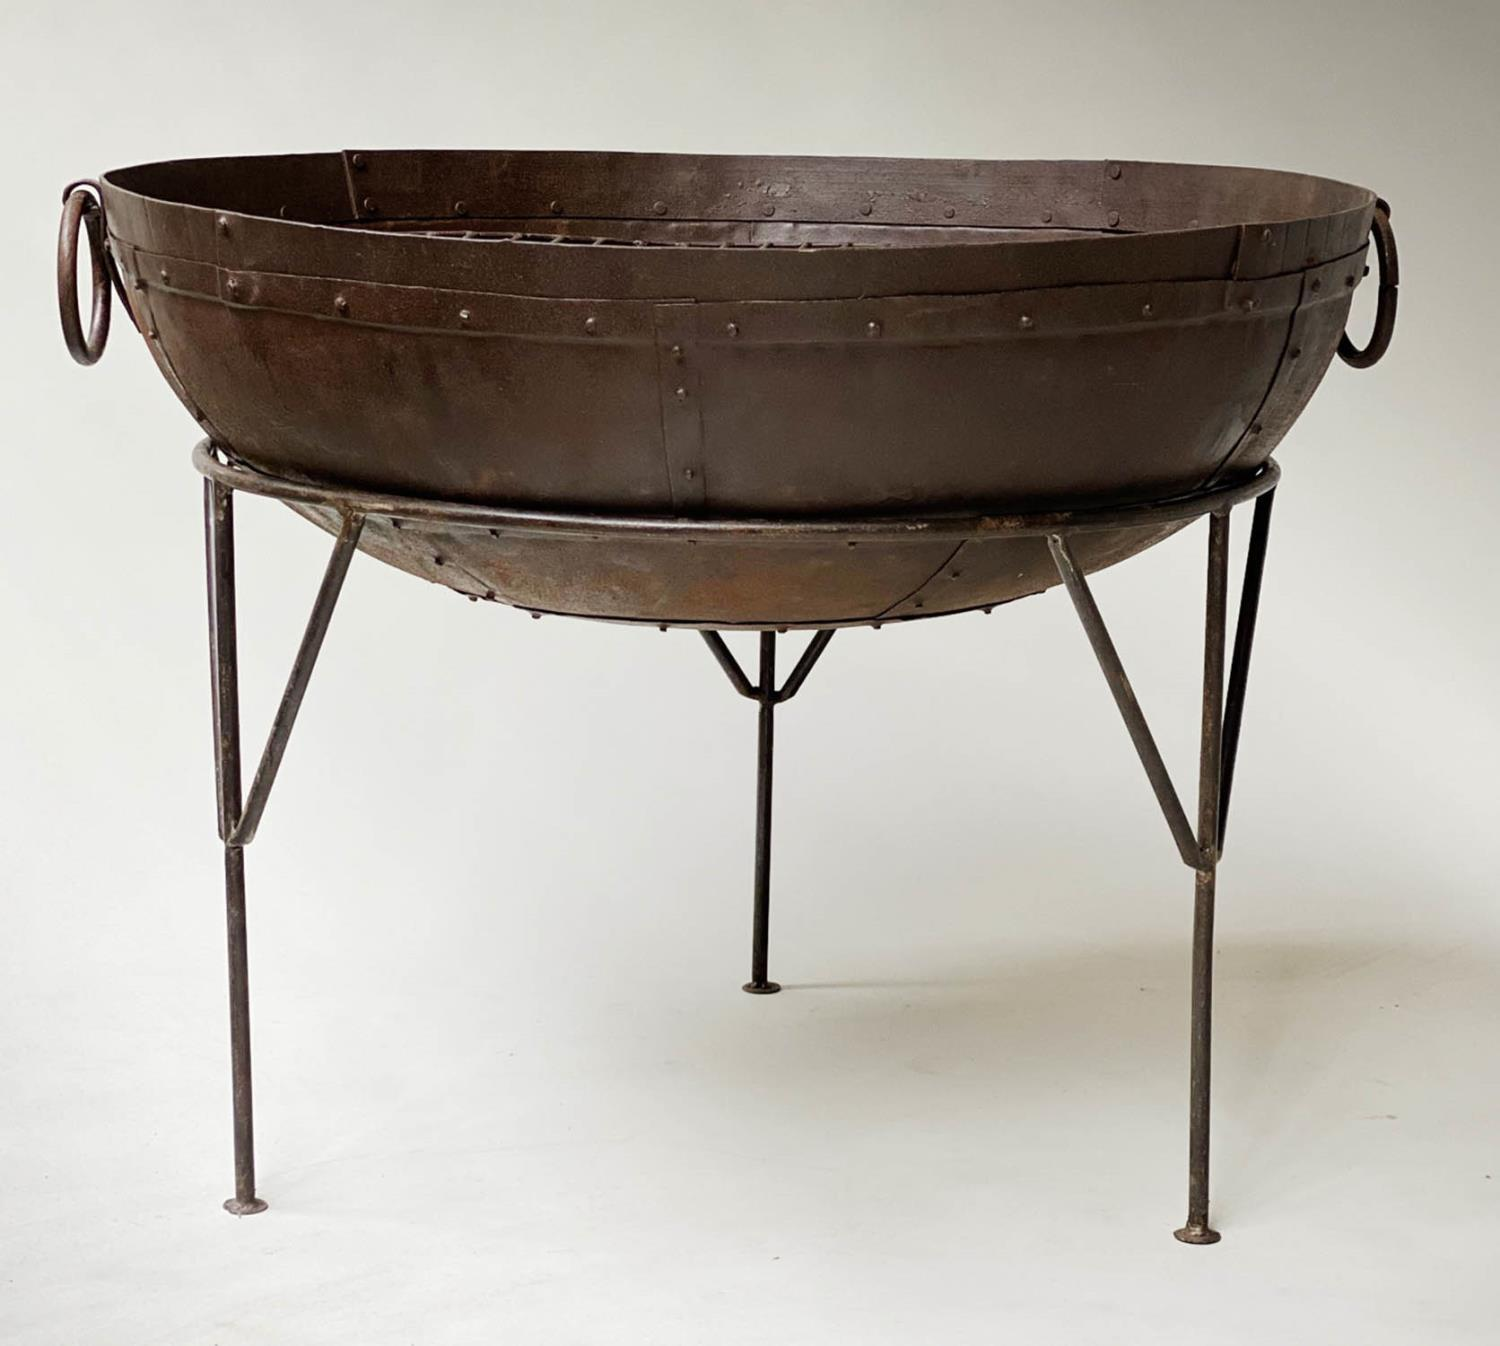 FIREPIT, riveted bowl form with grill and wrought iron stand, 84cm x 65cm H. - Image 2 of 5